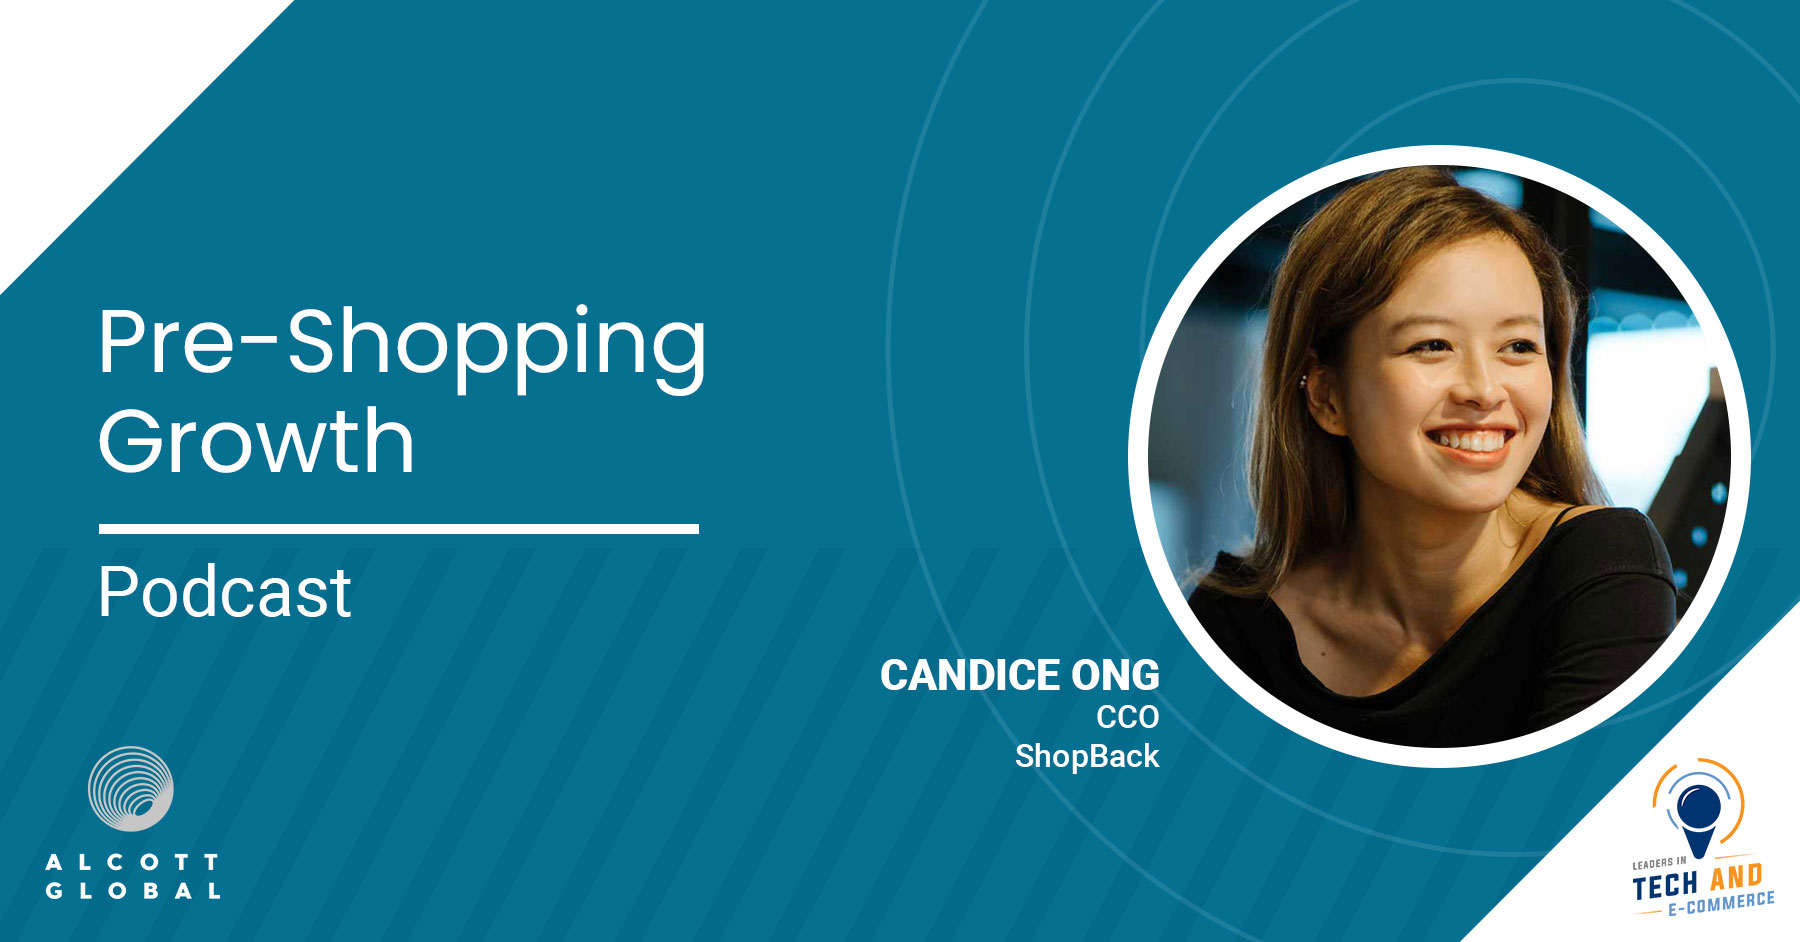 Pre-shopping Growth with Candice Ong CCO of ShopBack Featured Image